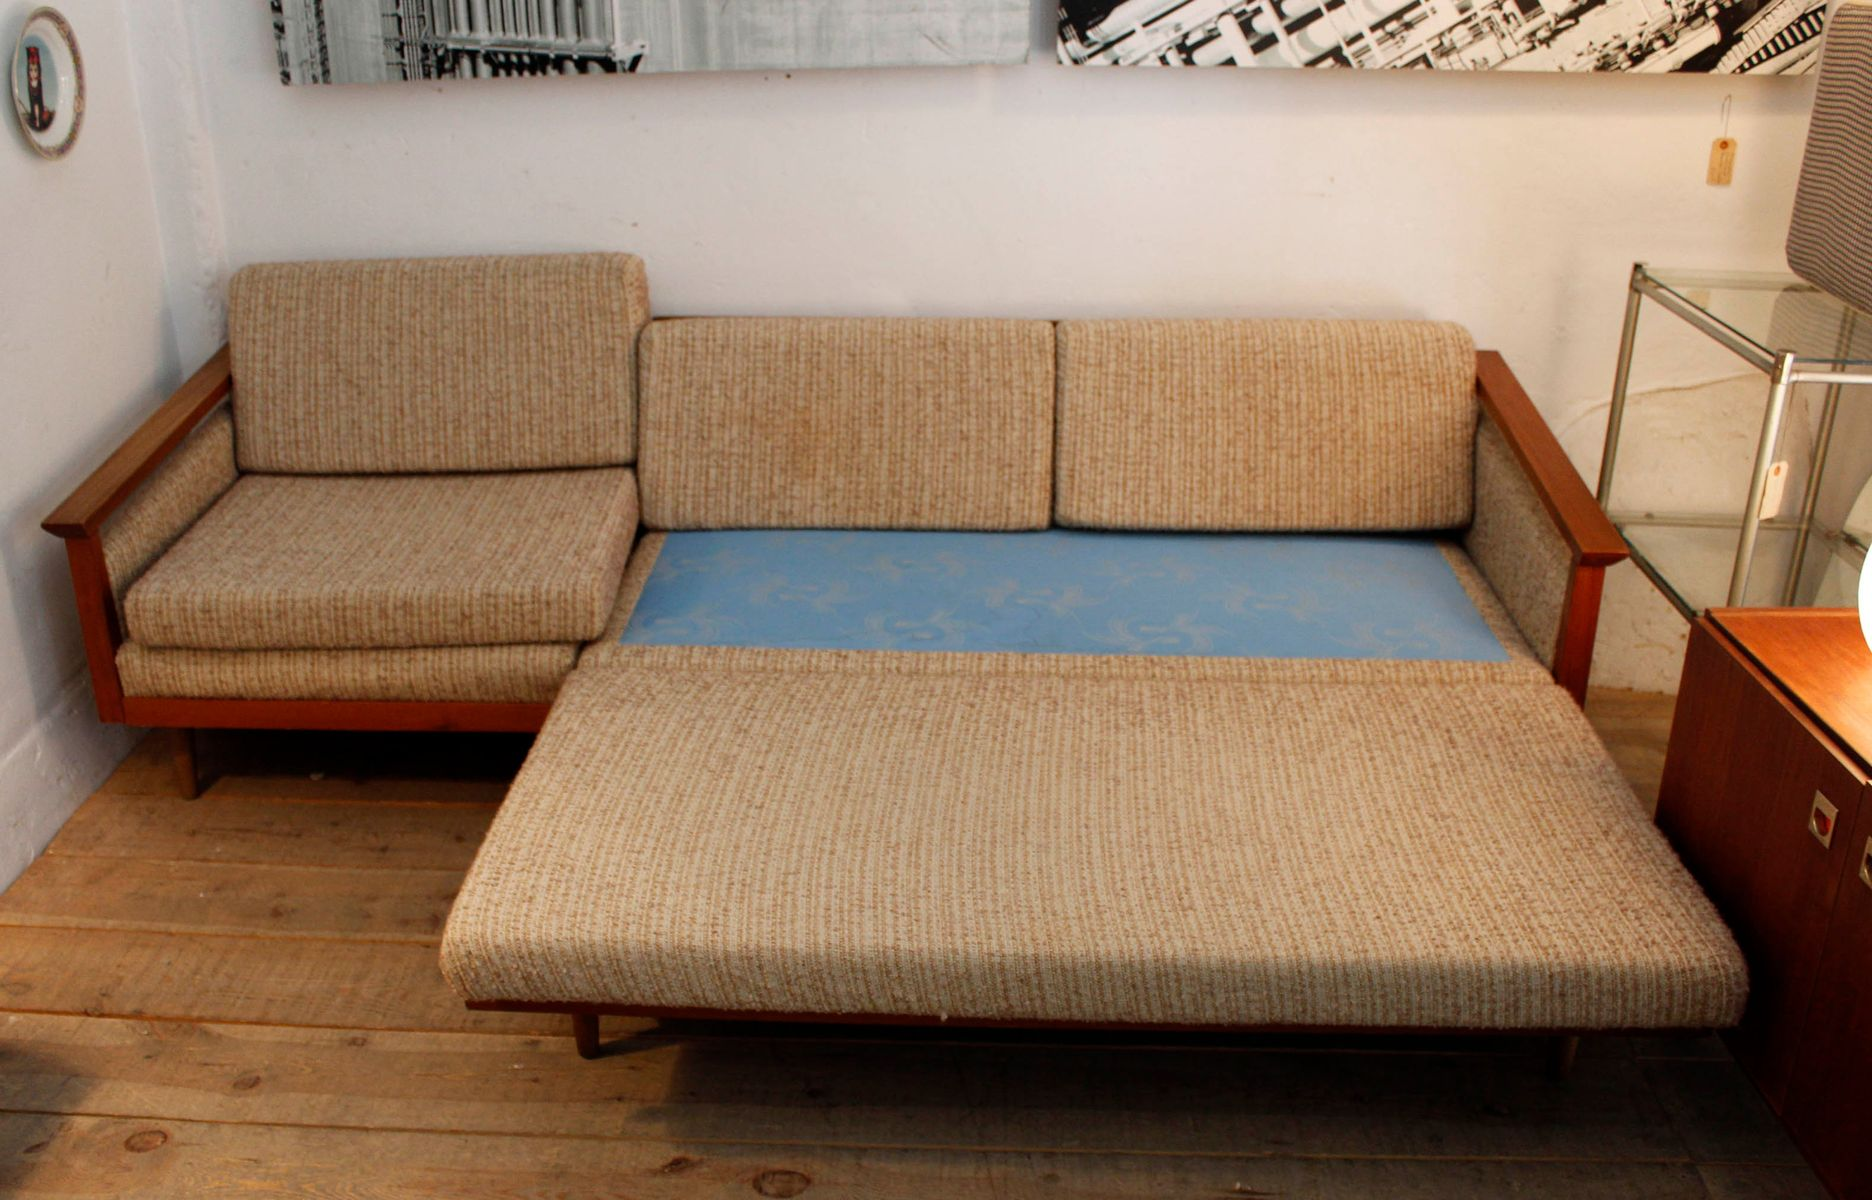 Vintage swedish four seater sofa with chaise longue for for 4 seater lounge with chaise